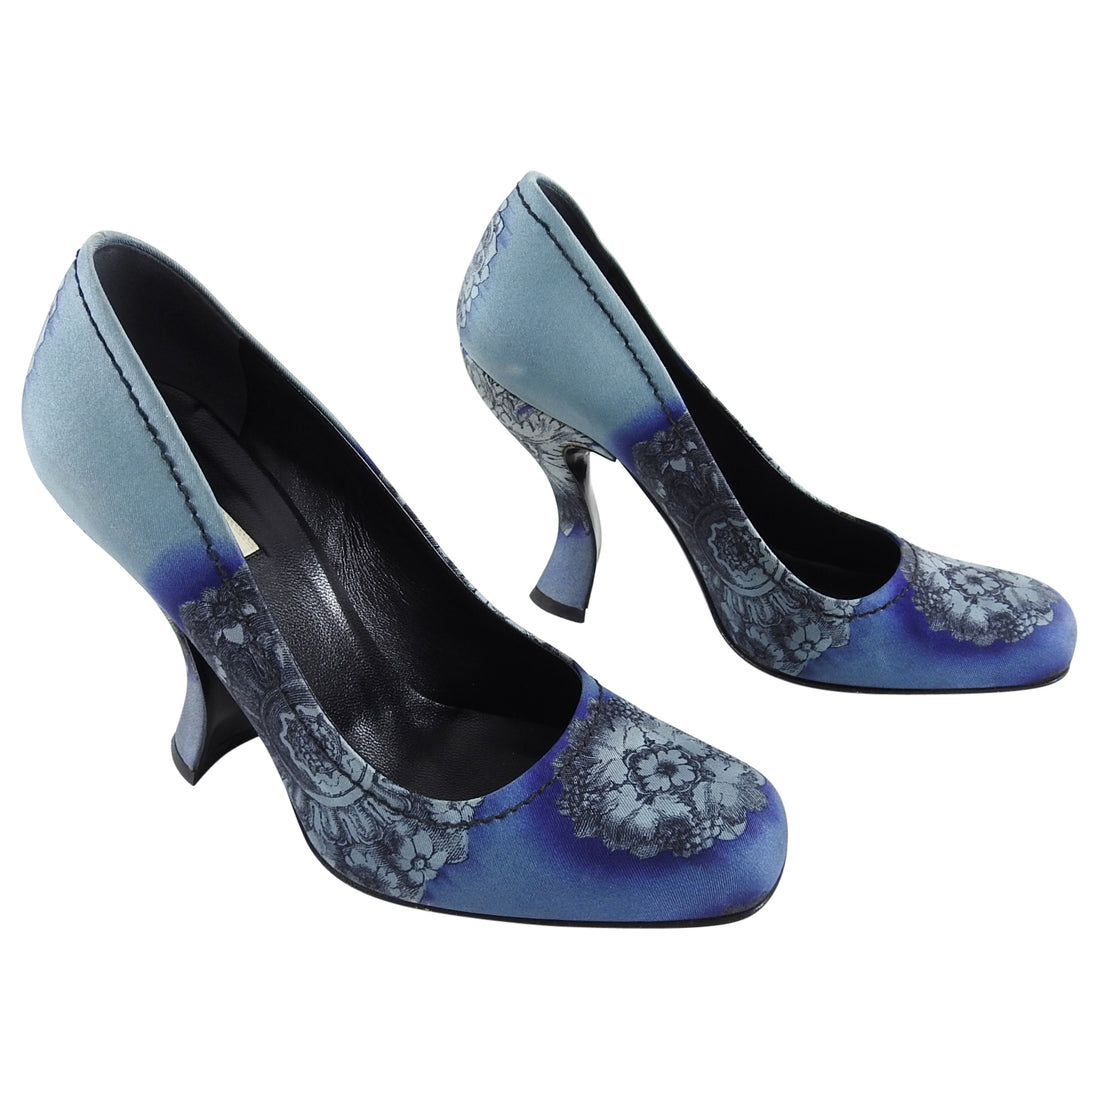 Prada Fall 2004 Vintage Blue Fabric Curved Heel Pumps